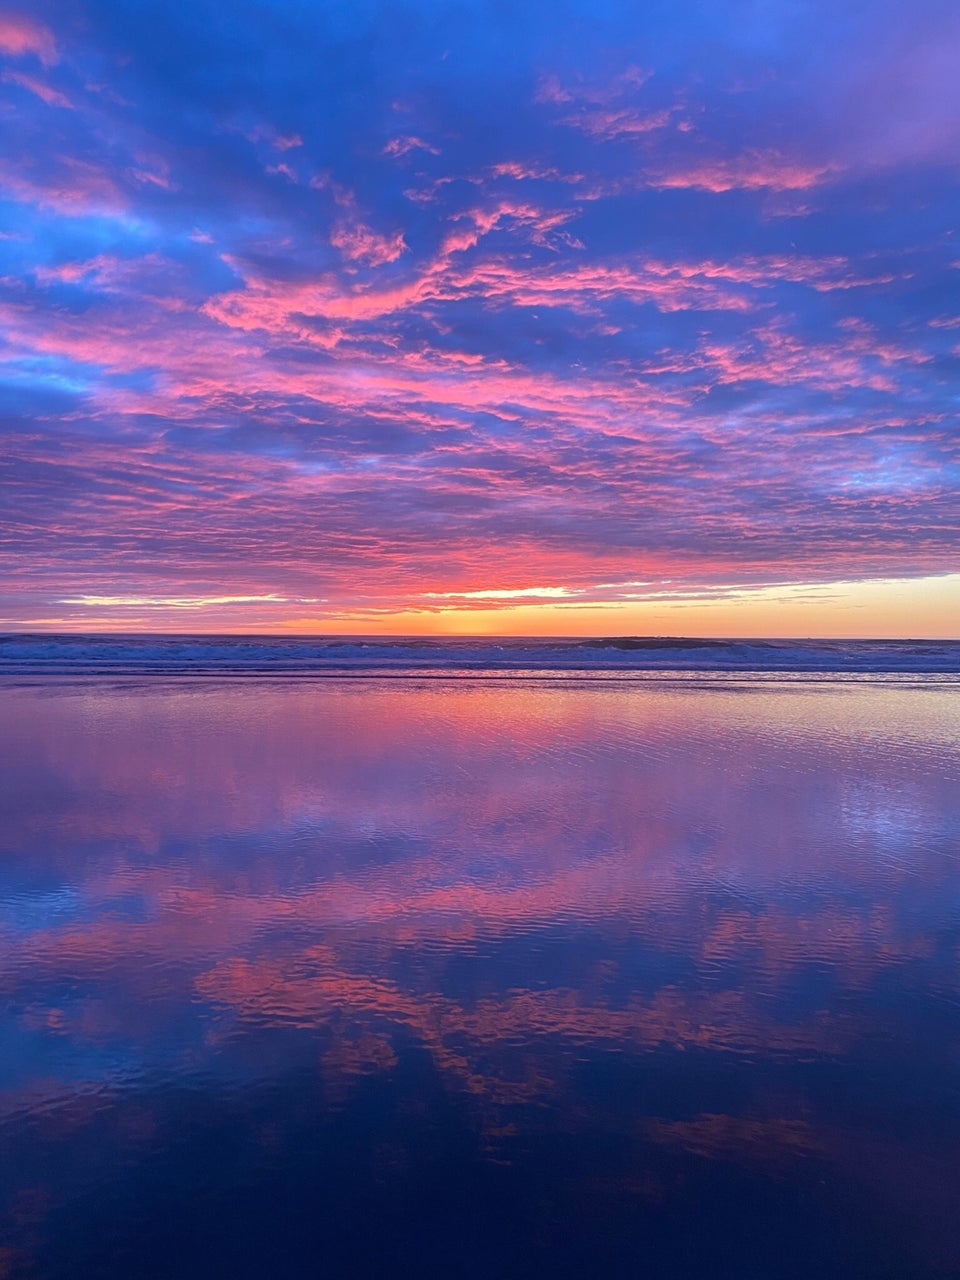 Blue, purple, pink clouds lighting up a post-sunset sky above an orange yellow horizon and distant Pacific Ocean waves crashing on a shore, wet sand in the foreground reflecting the beautiful sky.